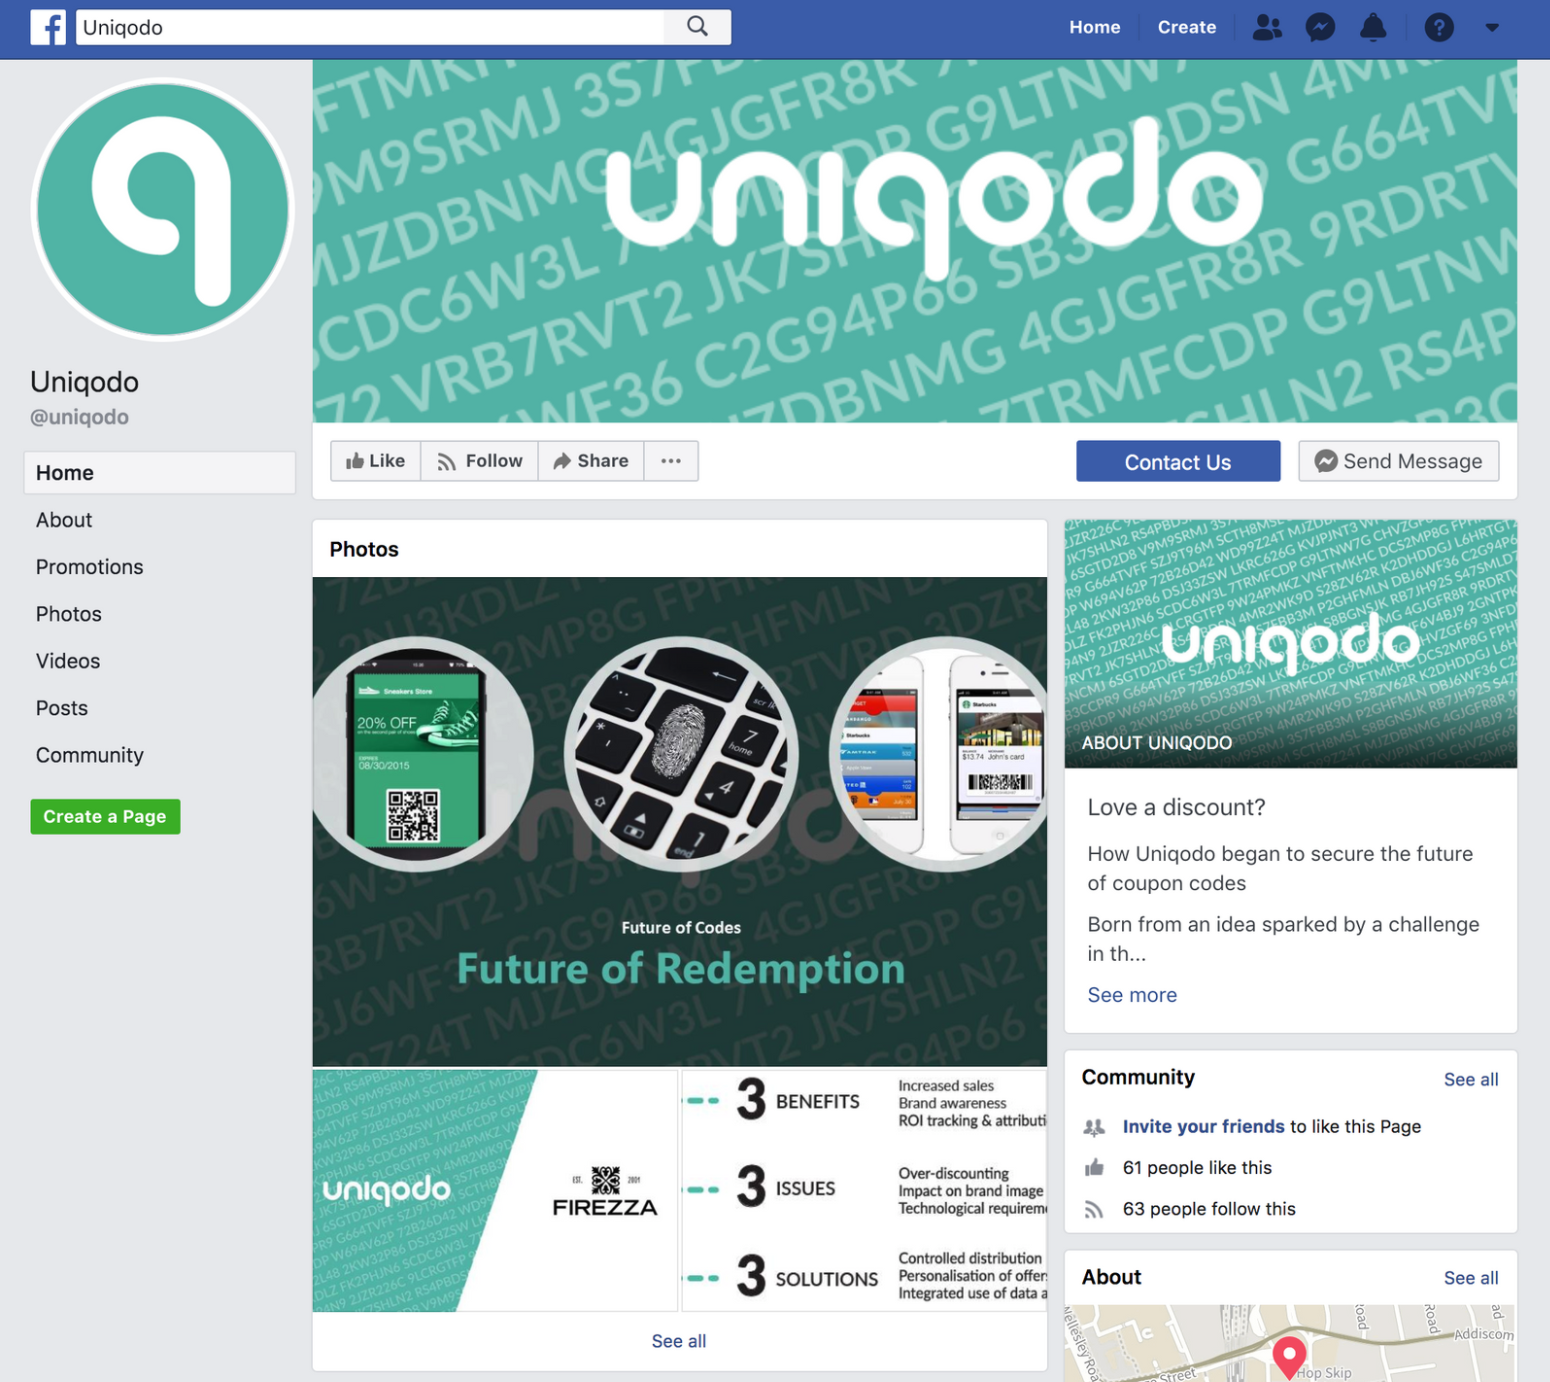 Uniqodo facebook page